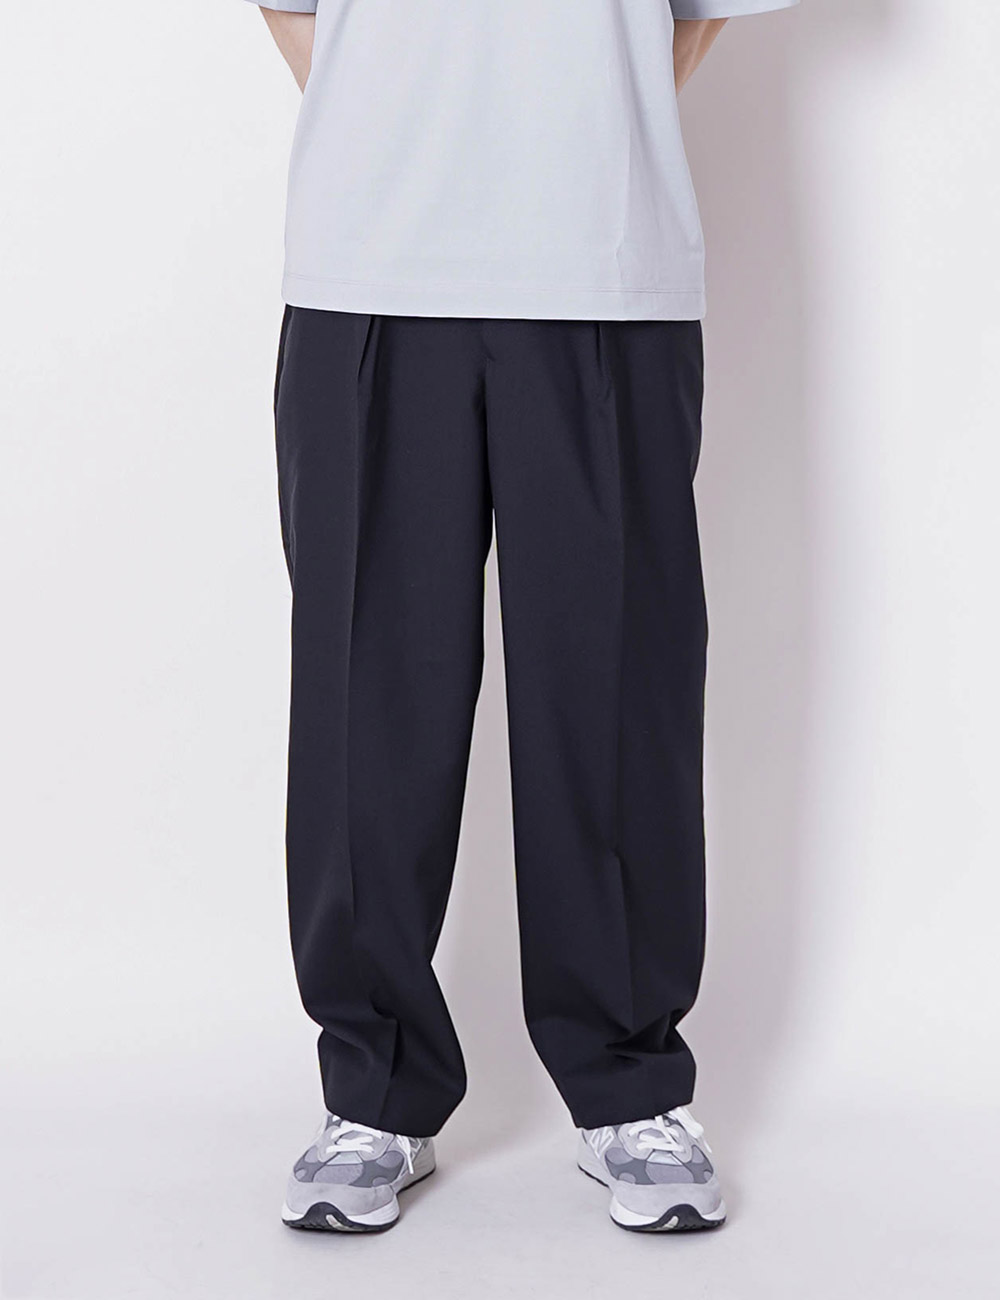 MARKAWARE : ORGANIC WOOL TROPICAL CLASSIC FIT TROUSER (BLACK)